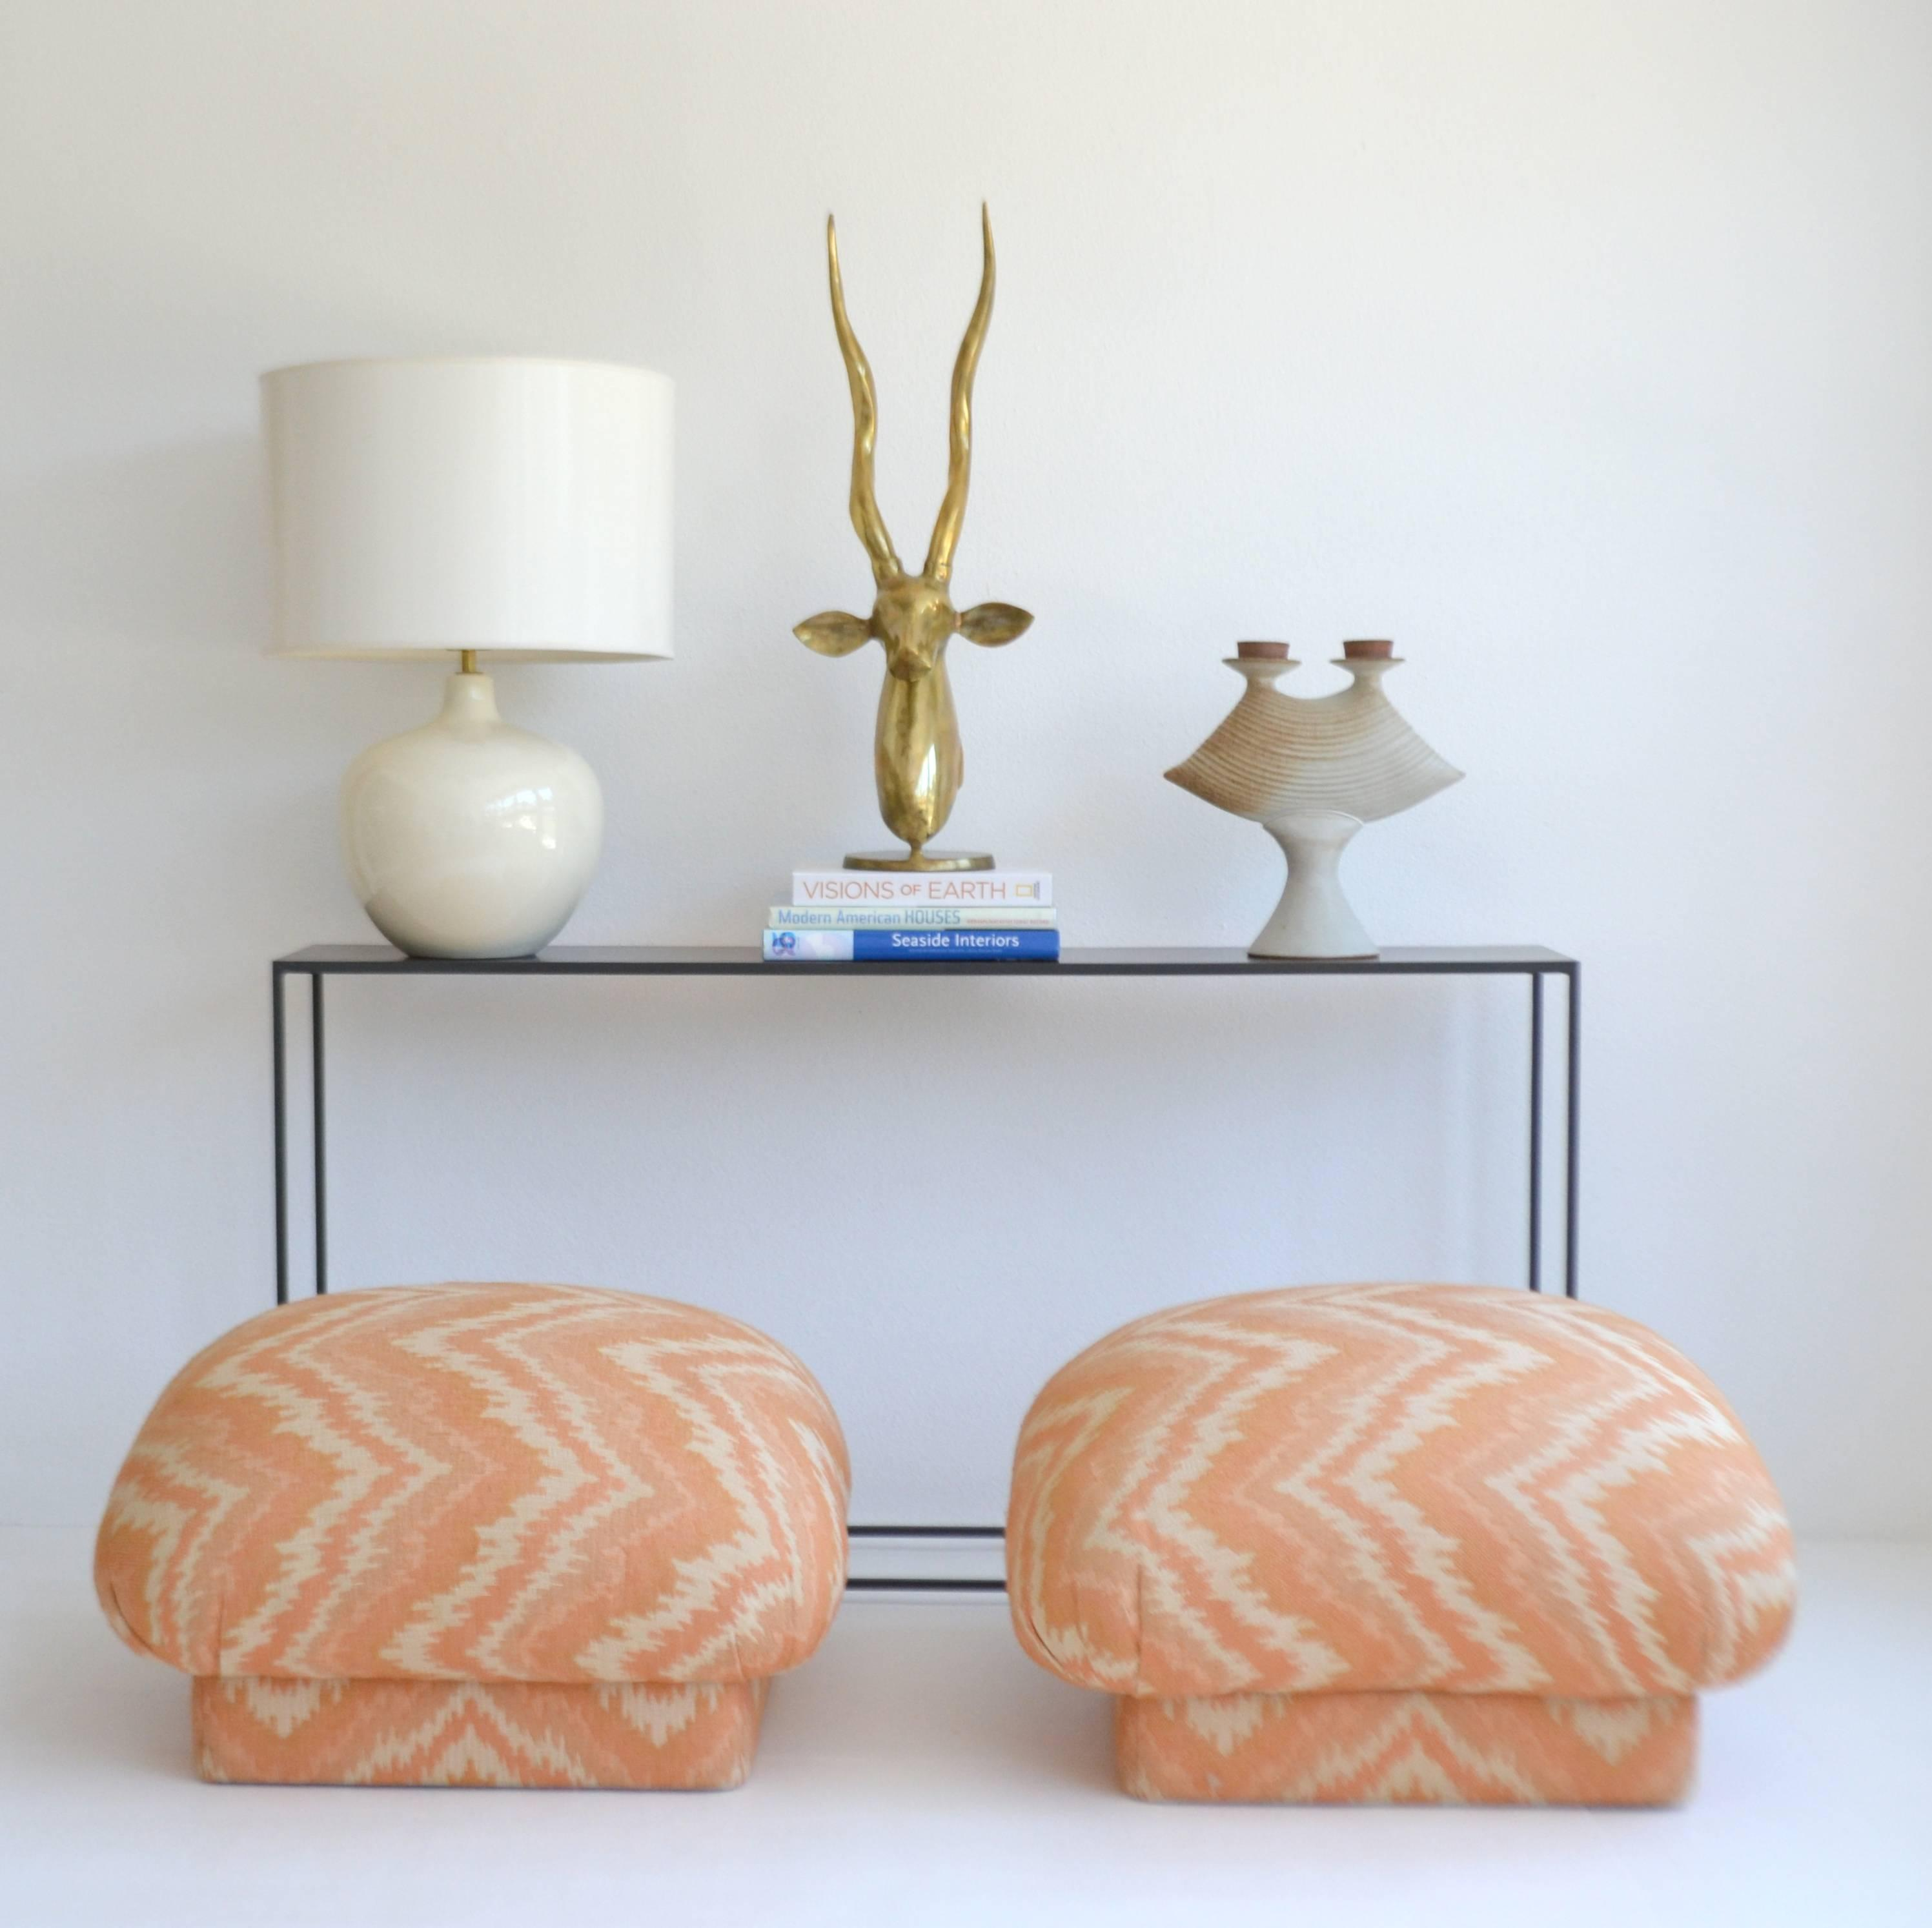 pair-of-midcentury-stools-or-benches-1708